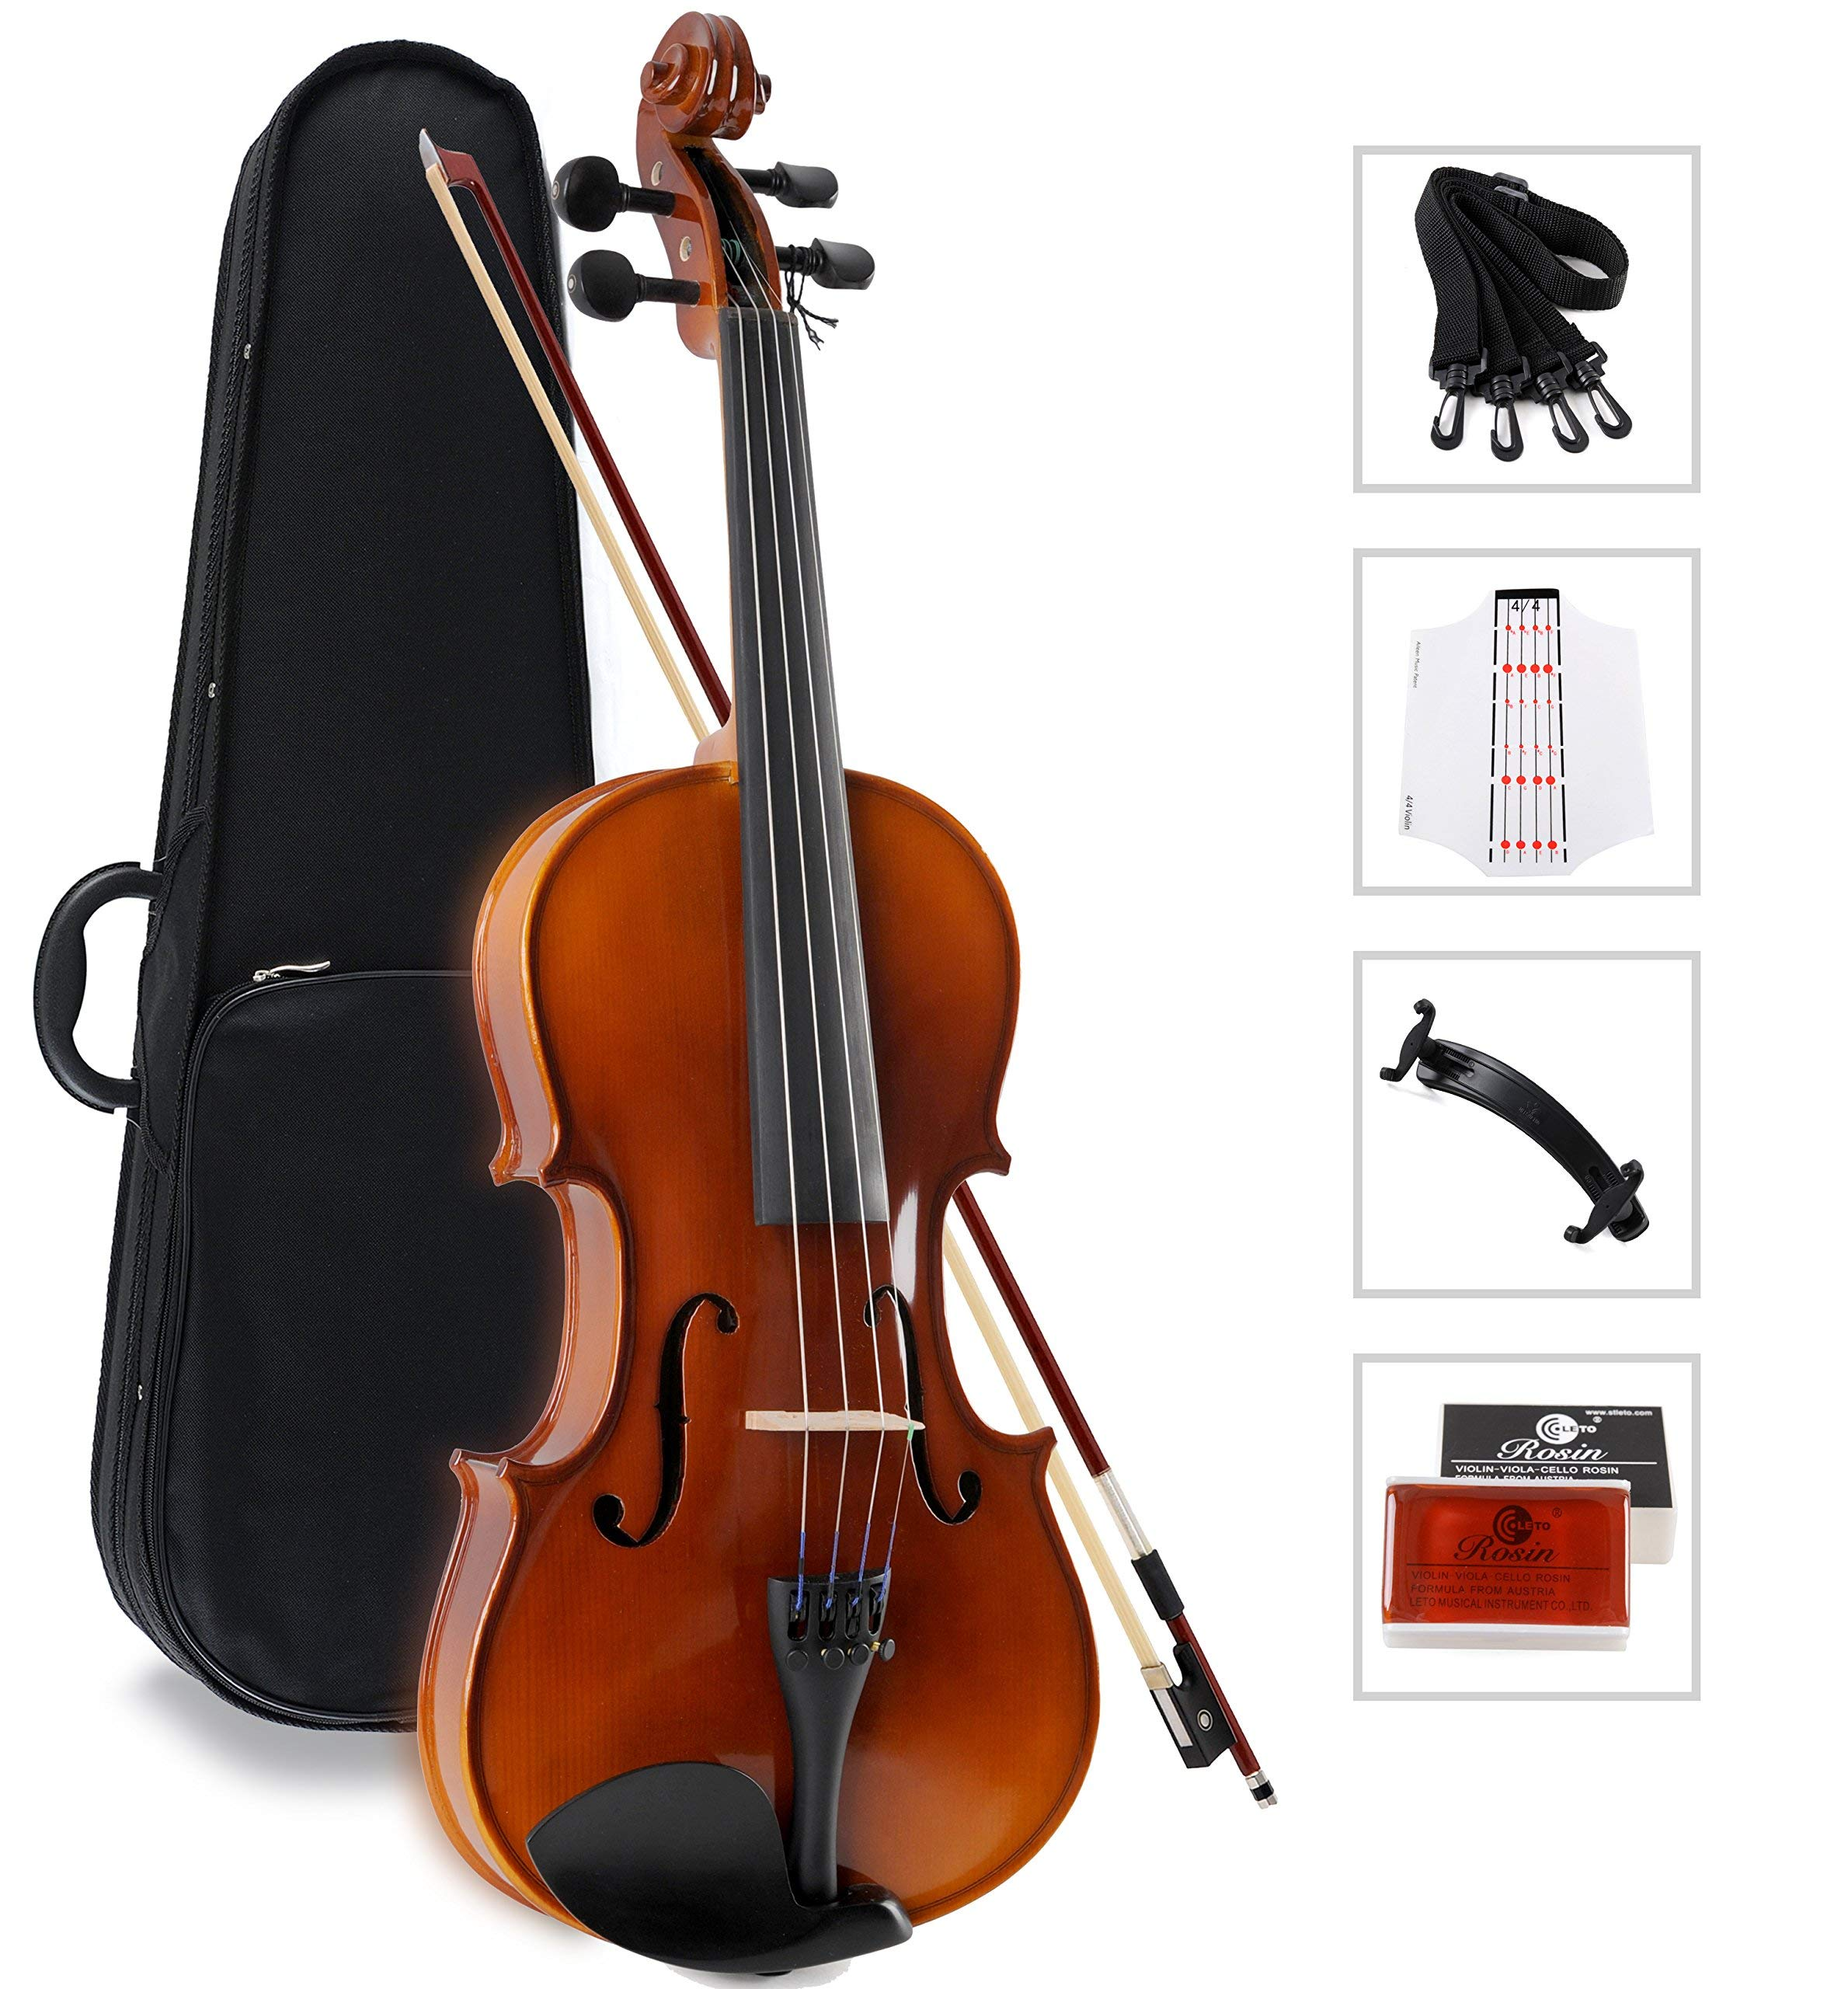 Aileen Solidwood Ebony Kids Students Beginners Violin Rental Shop Preference Outfit with Case, Rosin, Premium Strings, Shoulder Rest, Fingerboard Sticker (1/4)